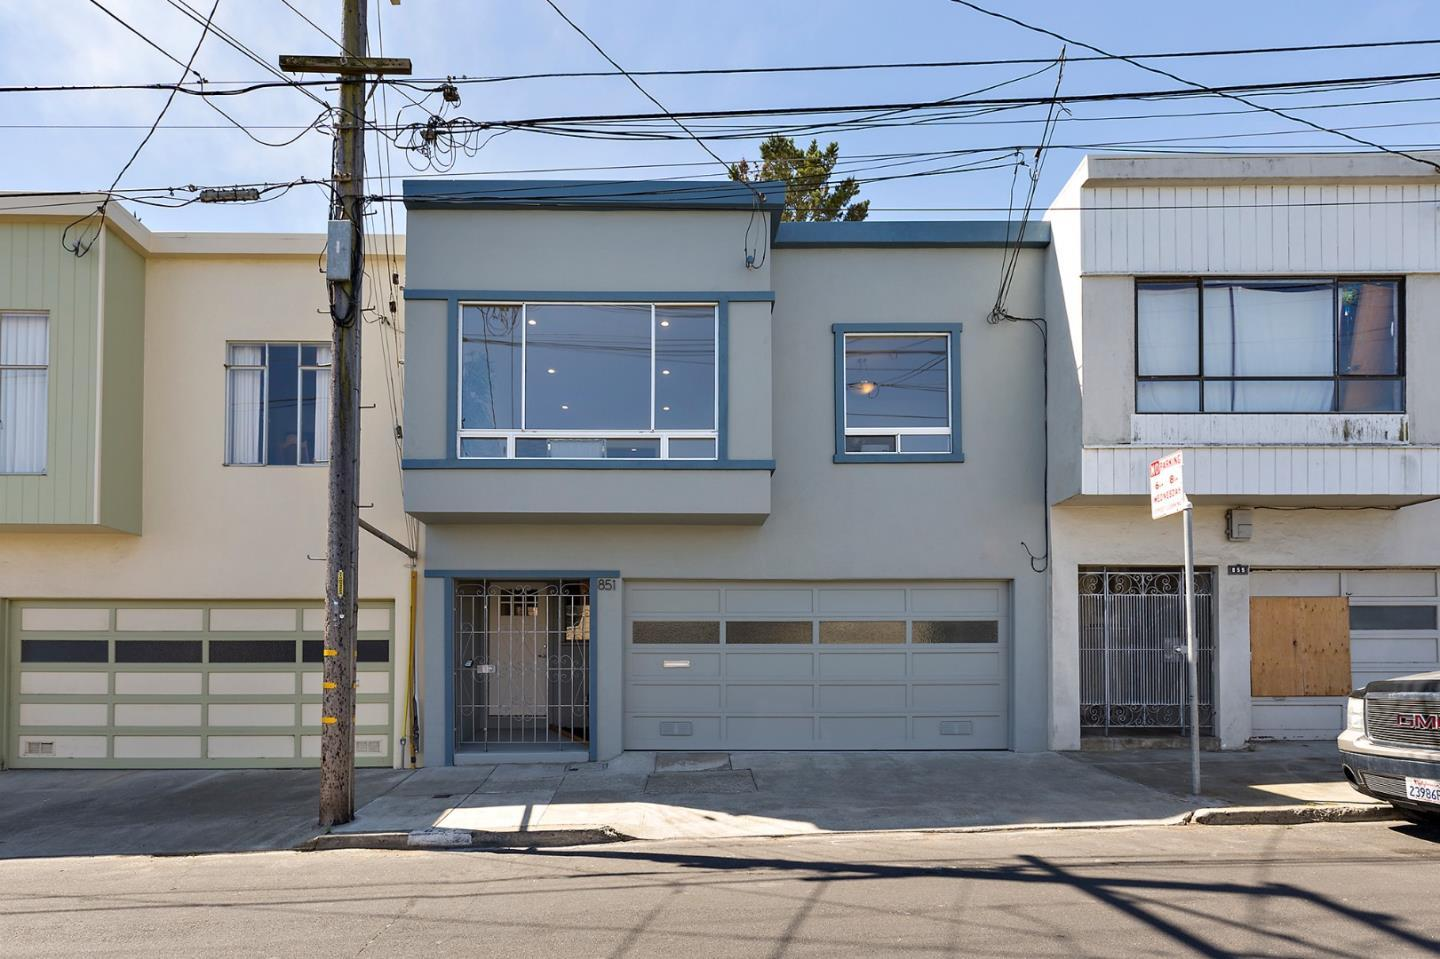 851 Bellevue Ave, Daly City, CA — MLS# ML81718238 — Coldwell Banker